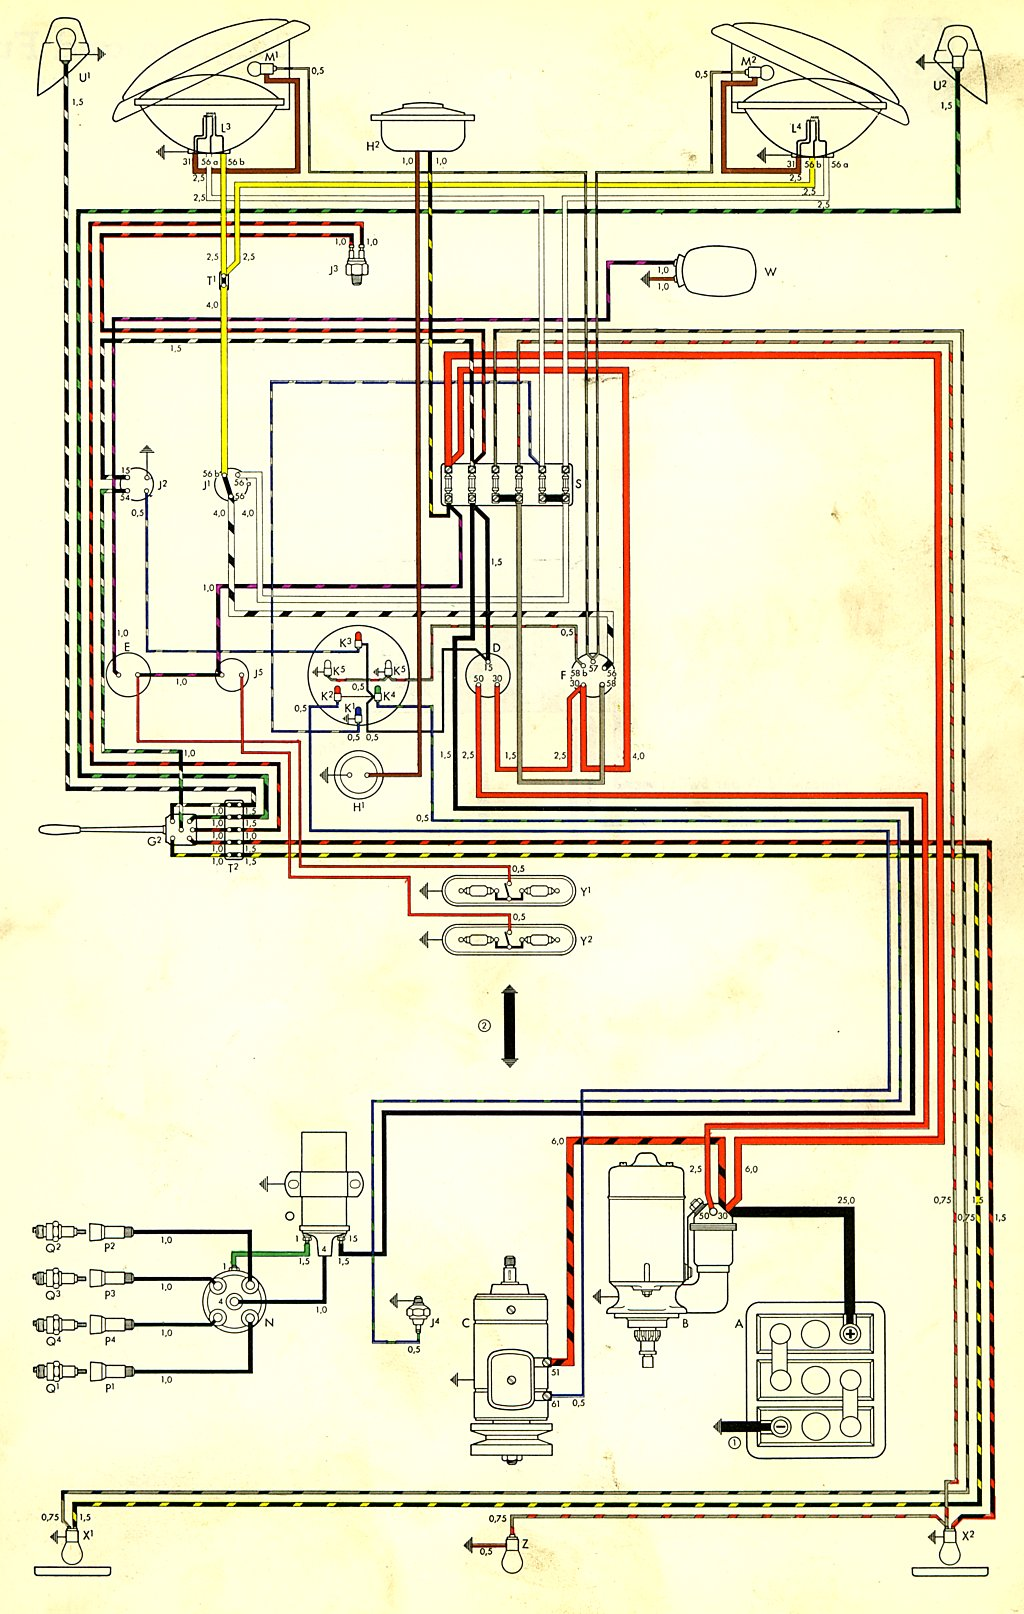 Type 2 Wiring Diagrams 66 Block Instructions